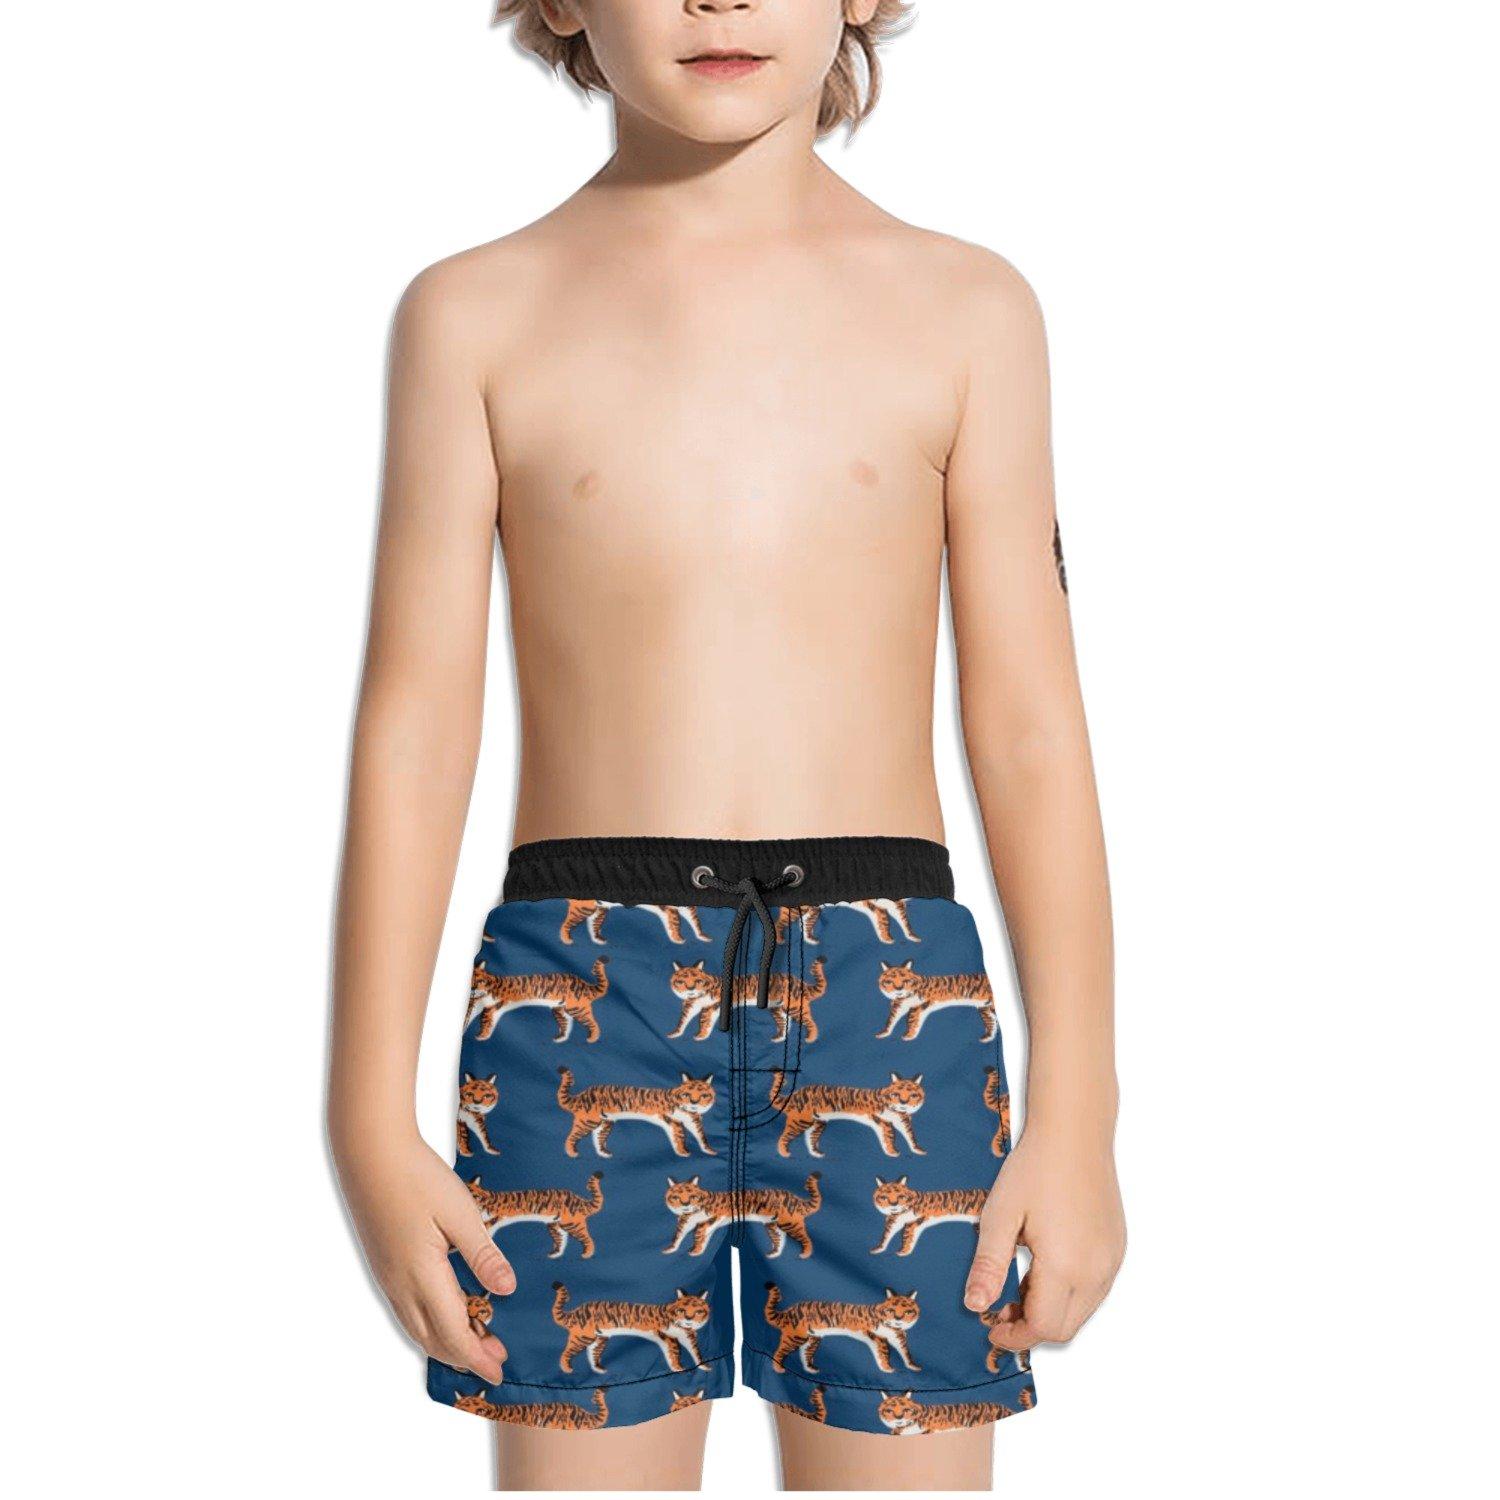 Ouxioaz Boys Swim Trunk Animals Tigers Beach Board Shorts